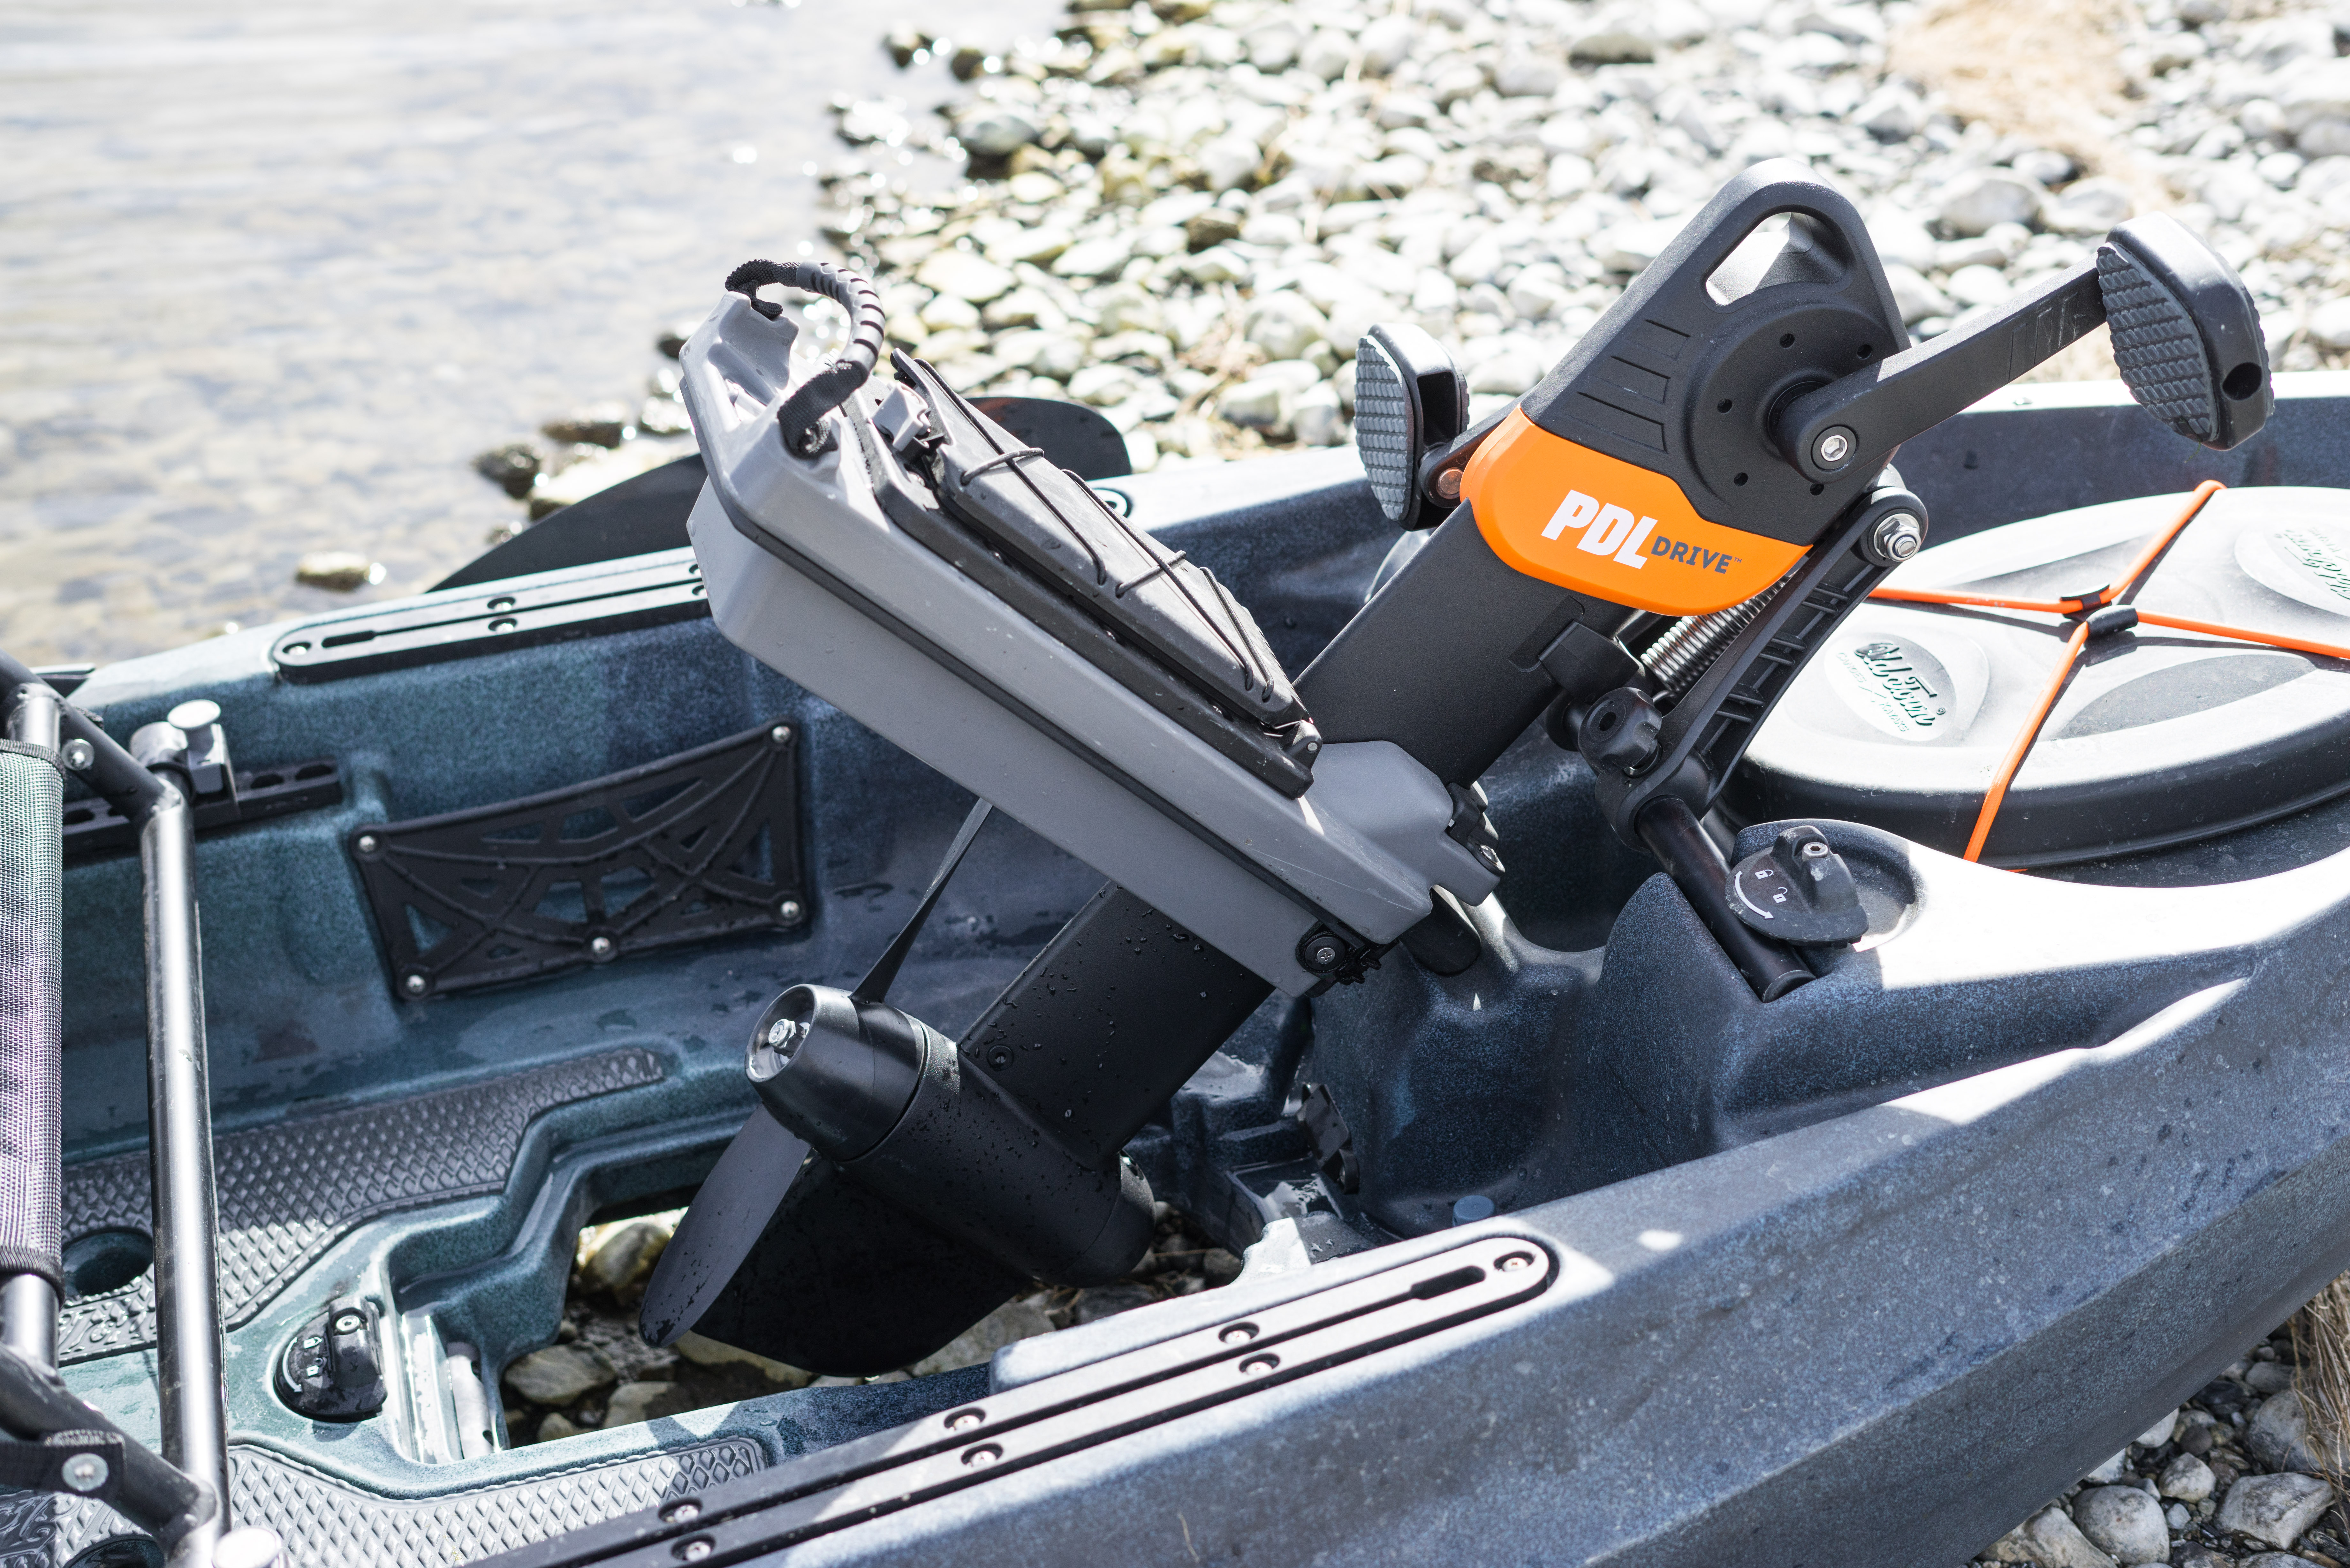 Old Town Topwater PDL Angler Reviewed | KAYAK FISH